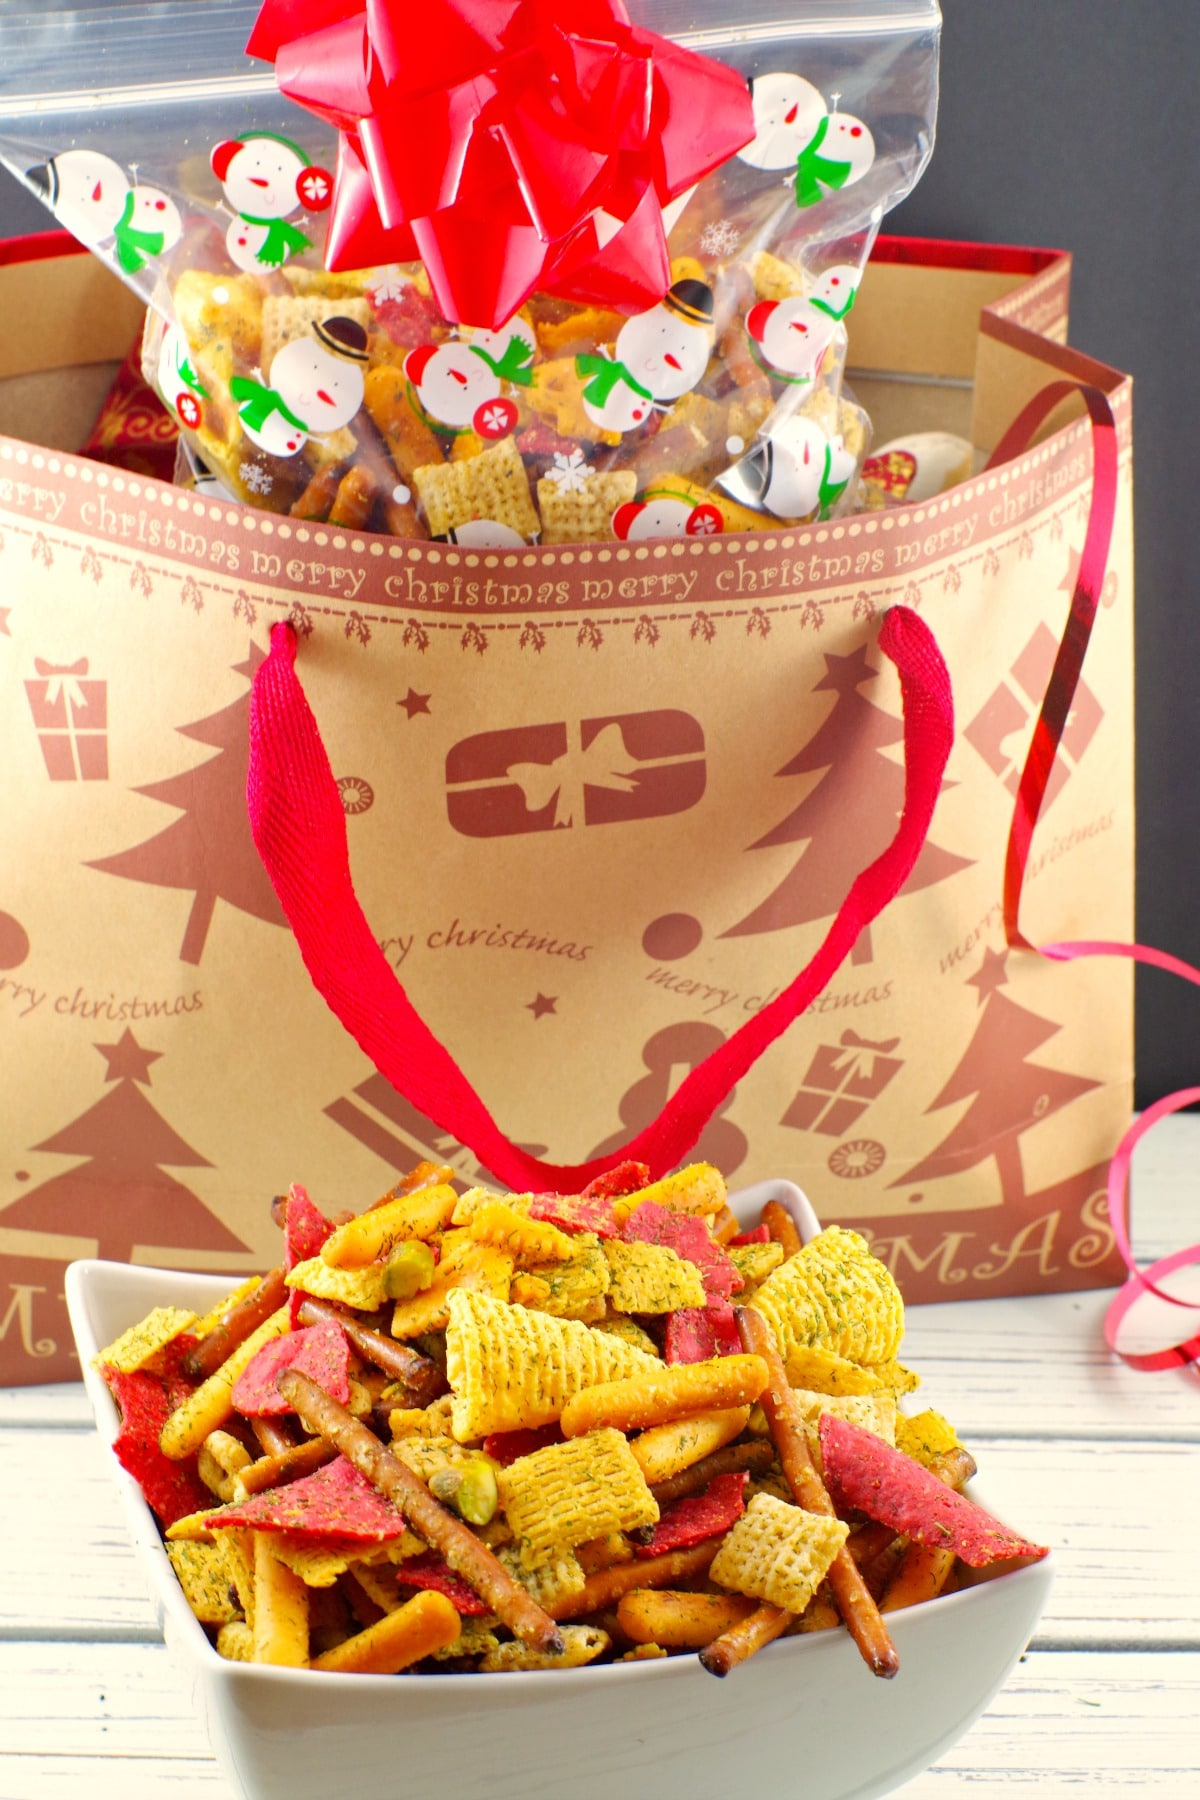 Holiday Chex Mix Recipe | #chexmix #partymix #holiday - foodmeanderings.com